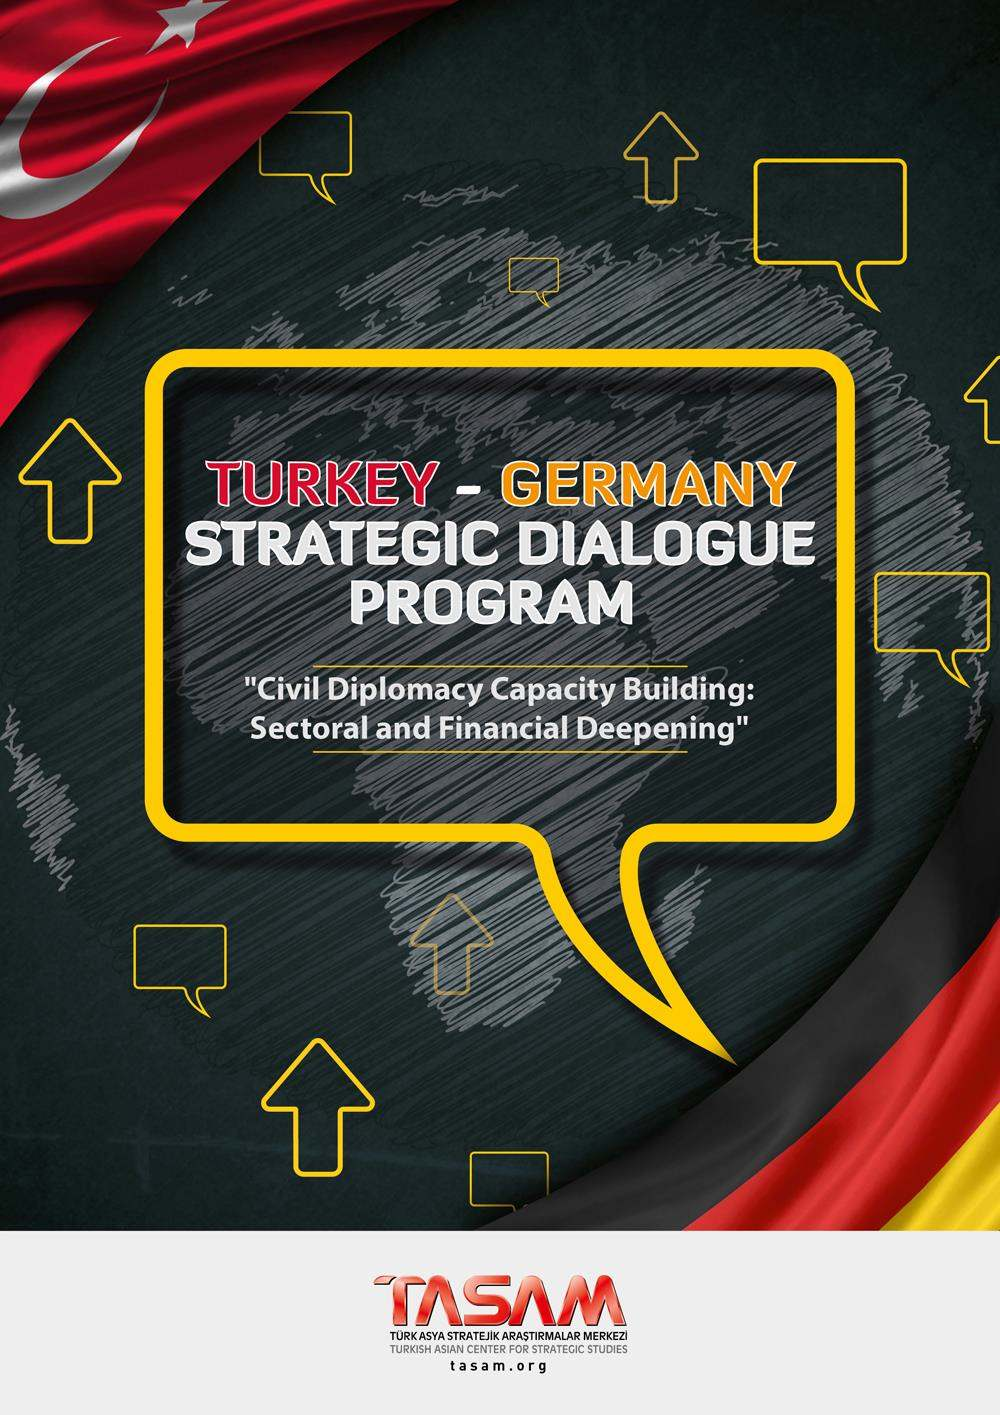 Turkey - Germany Strategic Dialogue Program